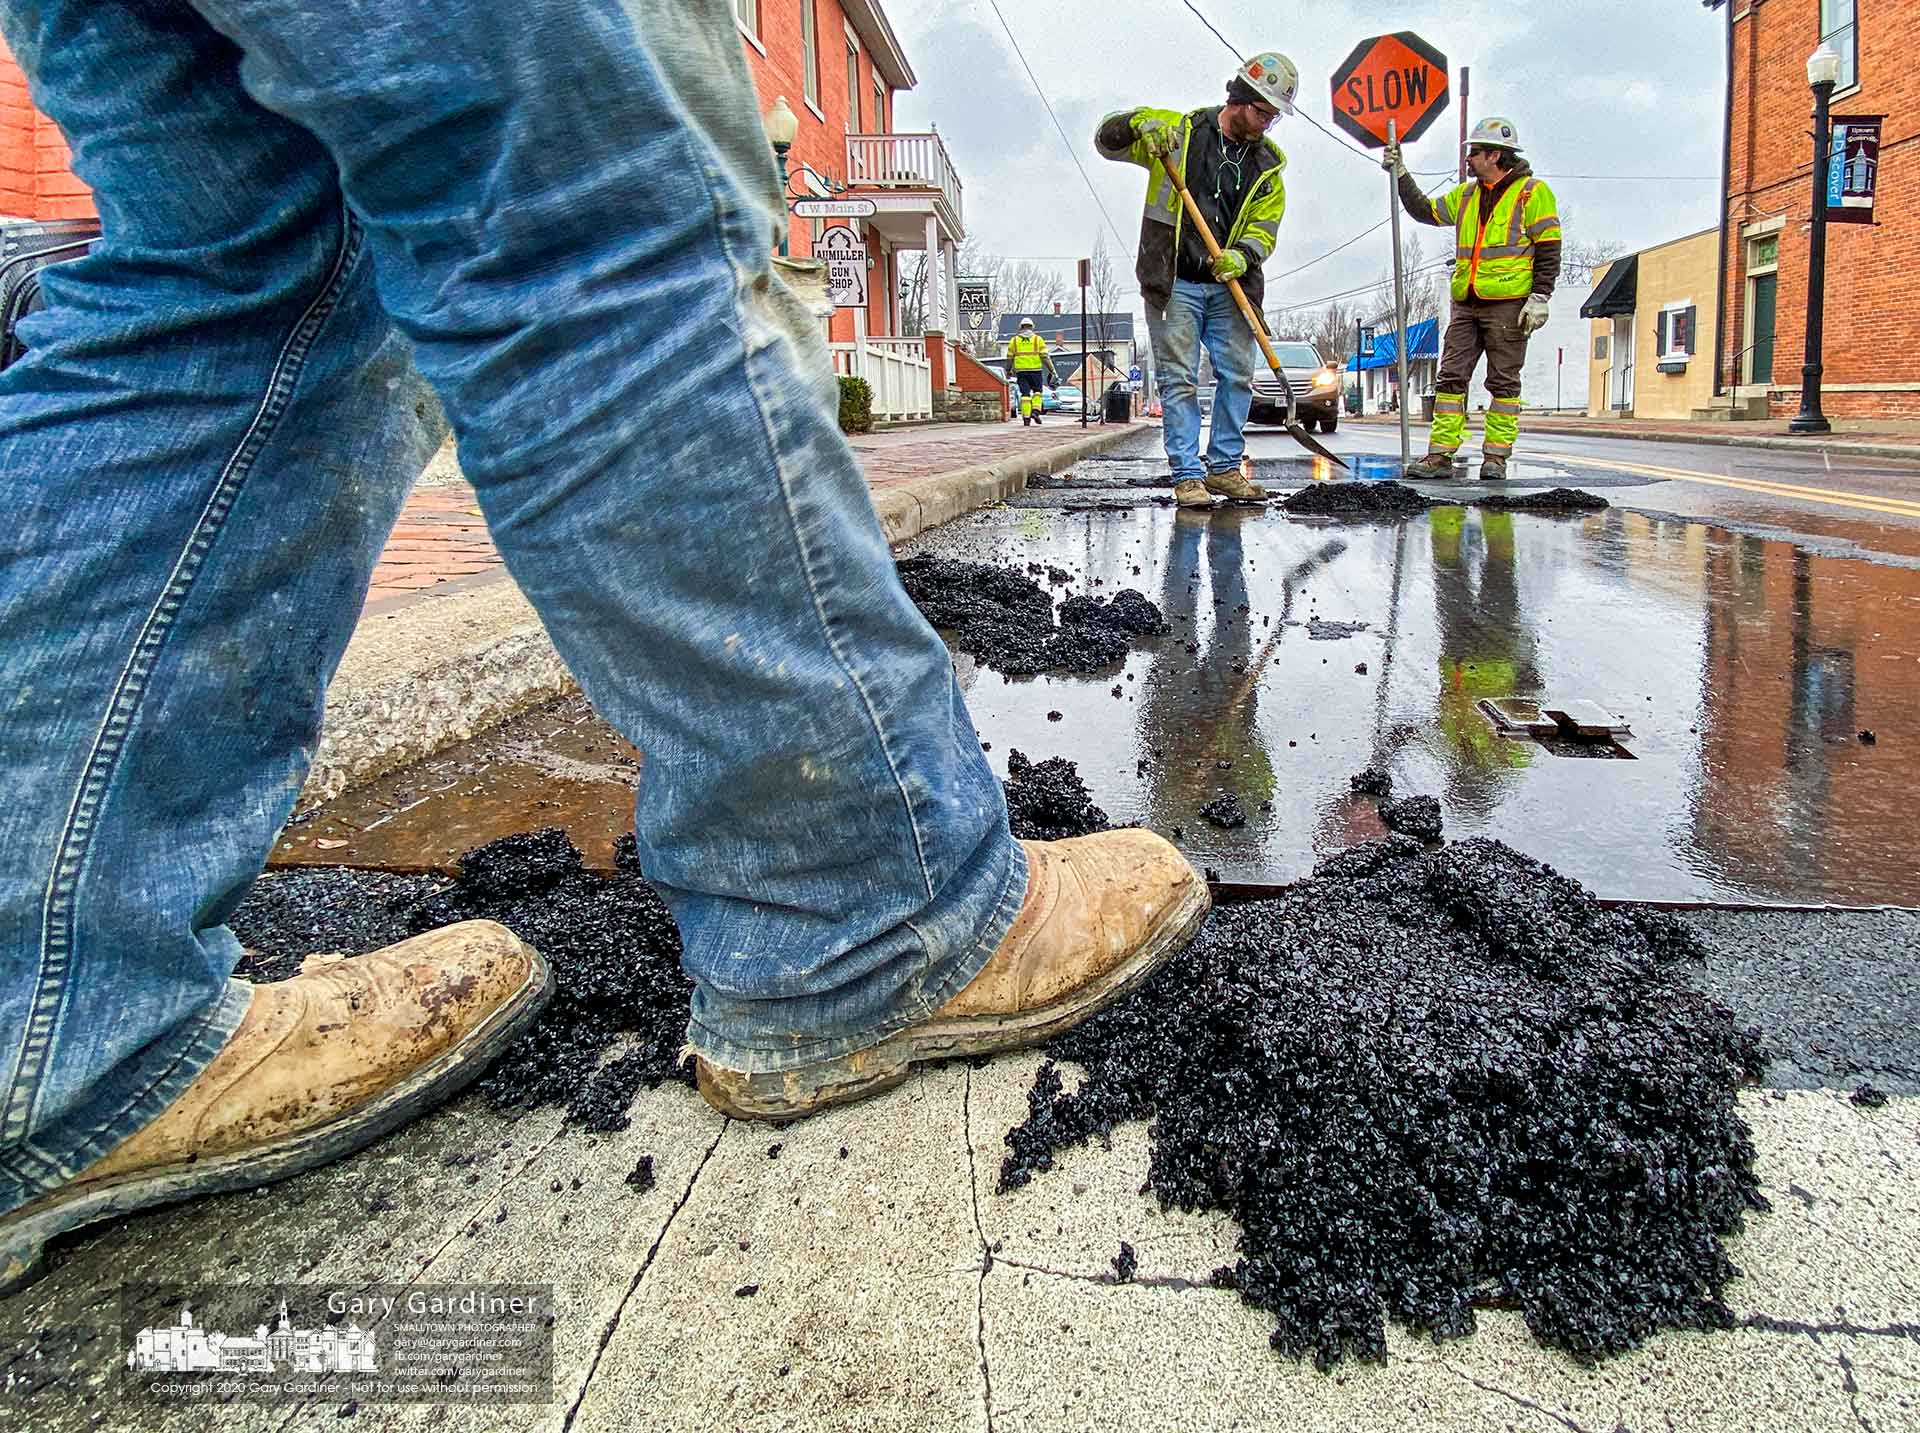 A Miller Pipeline crew presses cold patch asphalt into place around steel plates installed over Columbia Gas Company work holes on West Main Street. My Final Photo for Jan. 31, 2020.